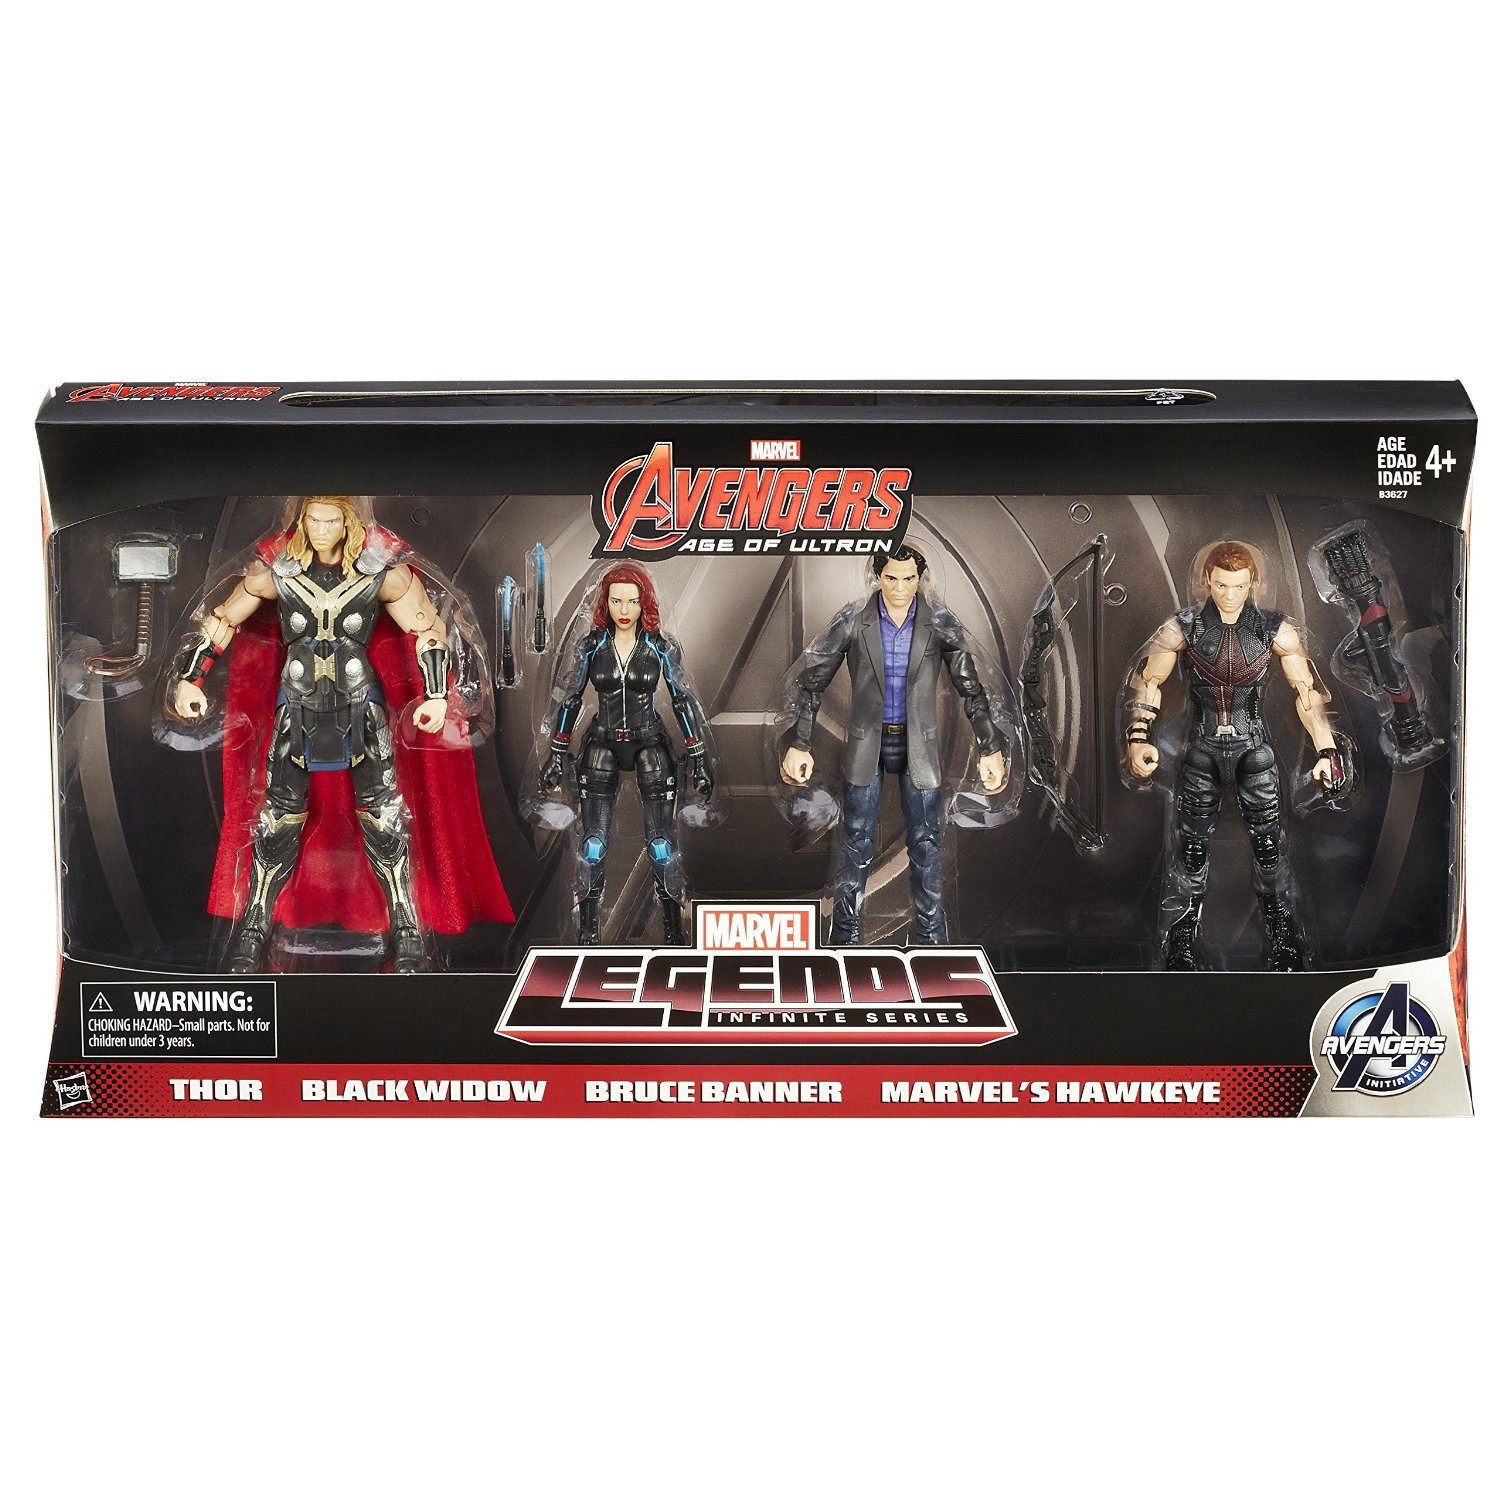 COMPLETE Exclusive Marvel Legends Cinematic Universe FIRST TEN 10TH YEAR Ultron